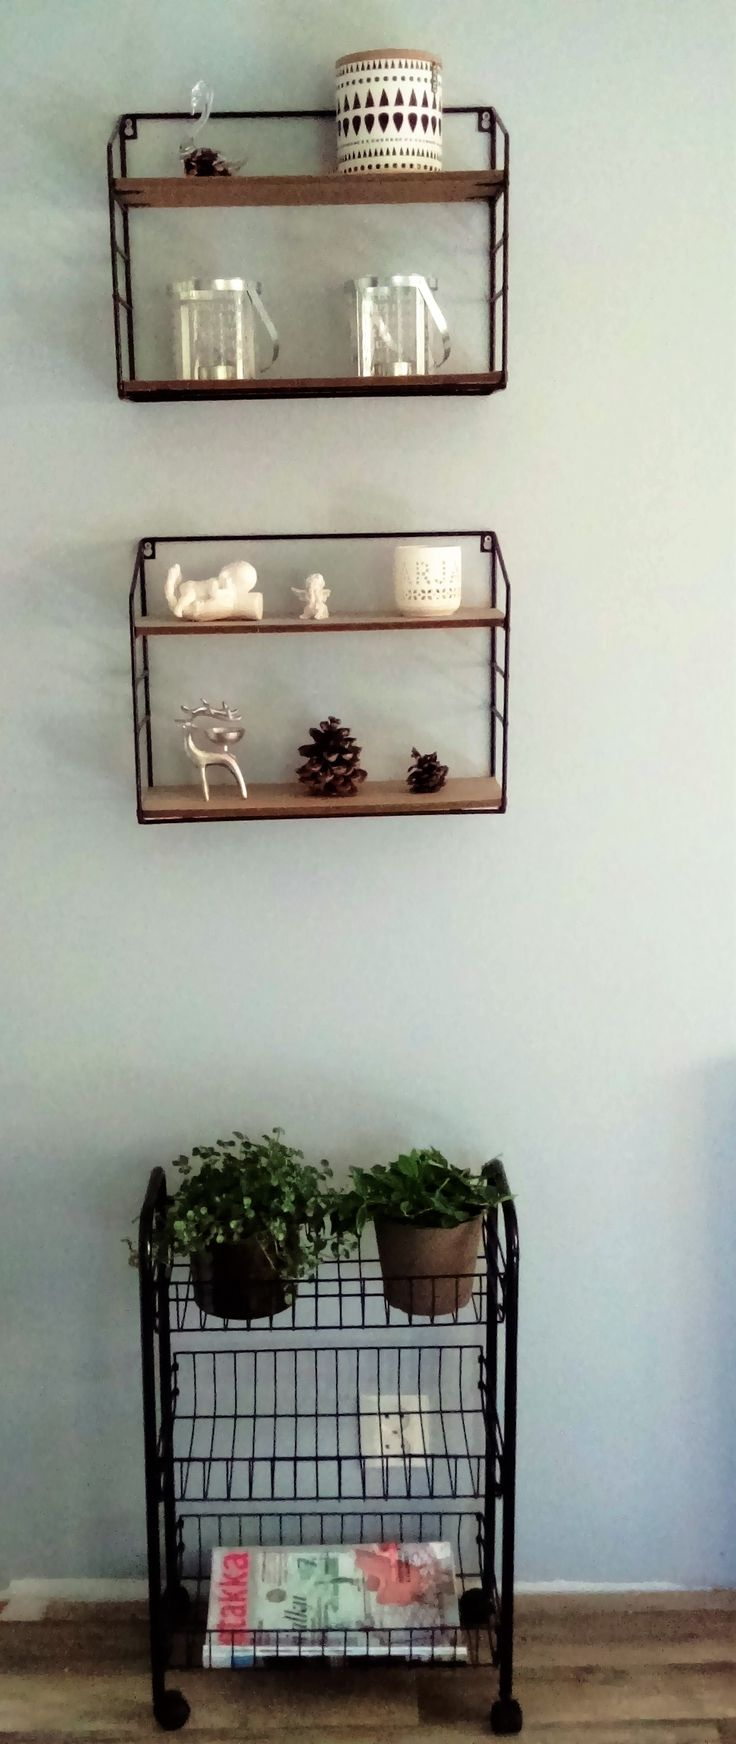 Some decoration from livingroom